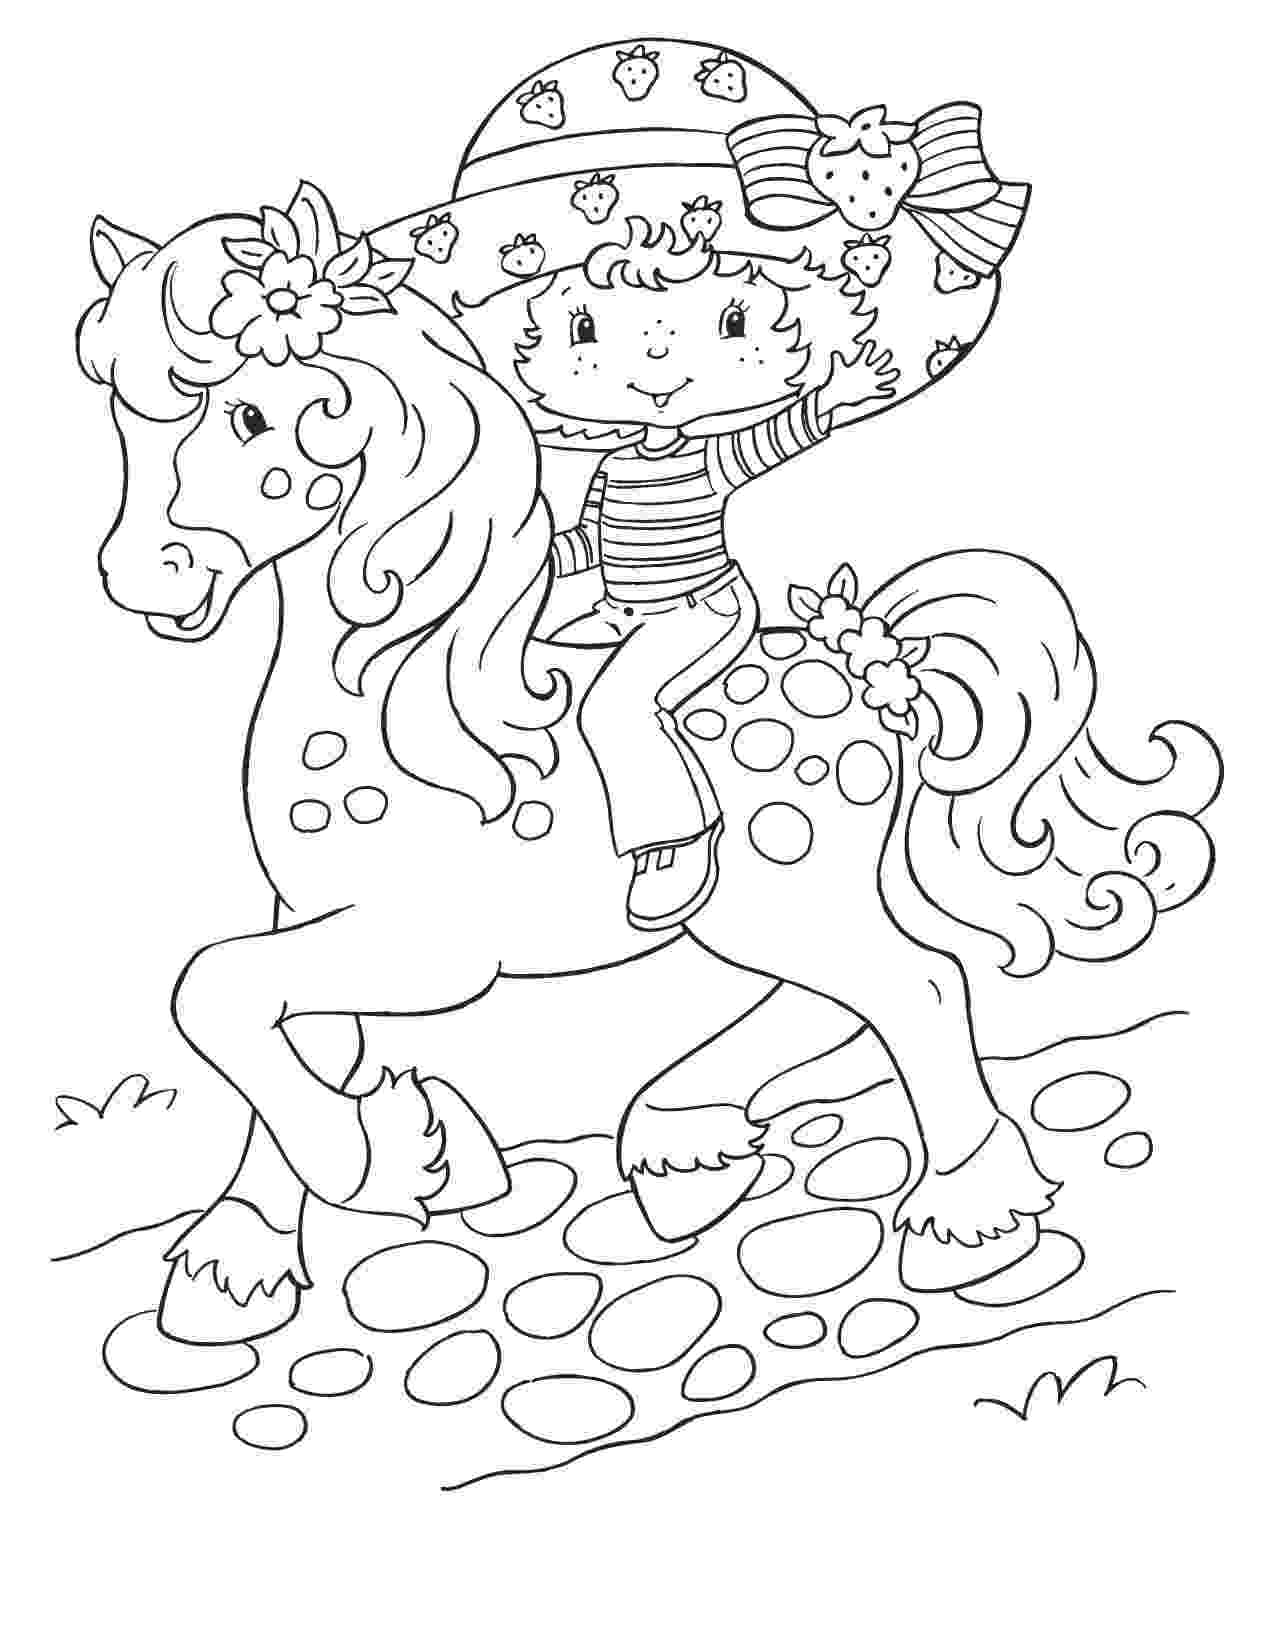 strawberry shortcake printable 16 best images about strawberry shortcake coloring pages strawberry shortcake printable